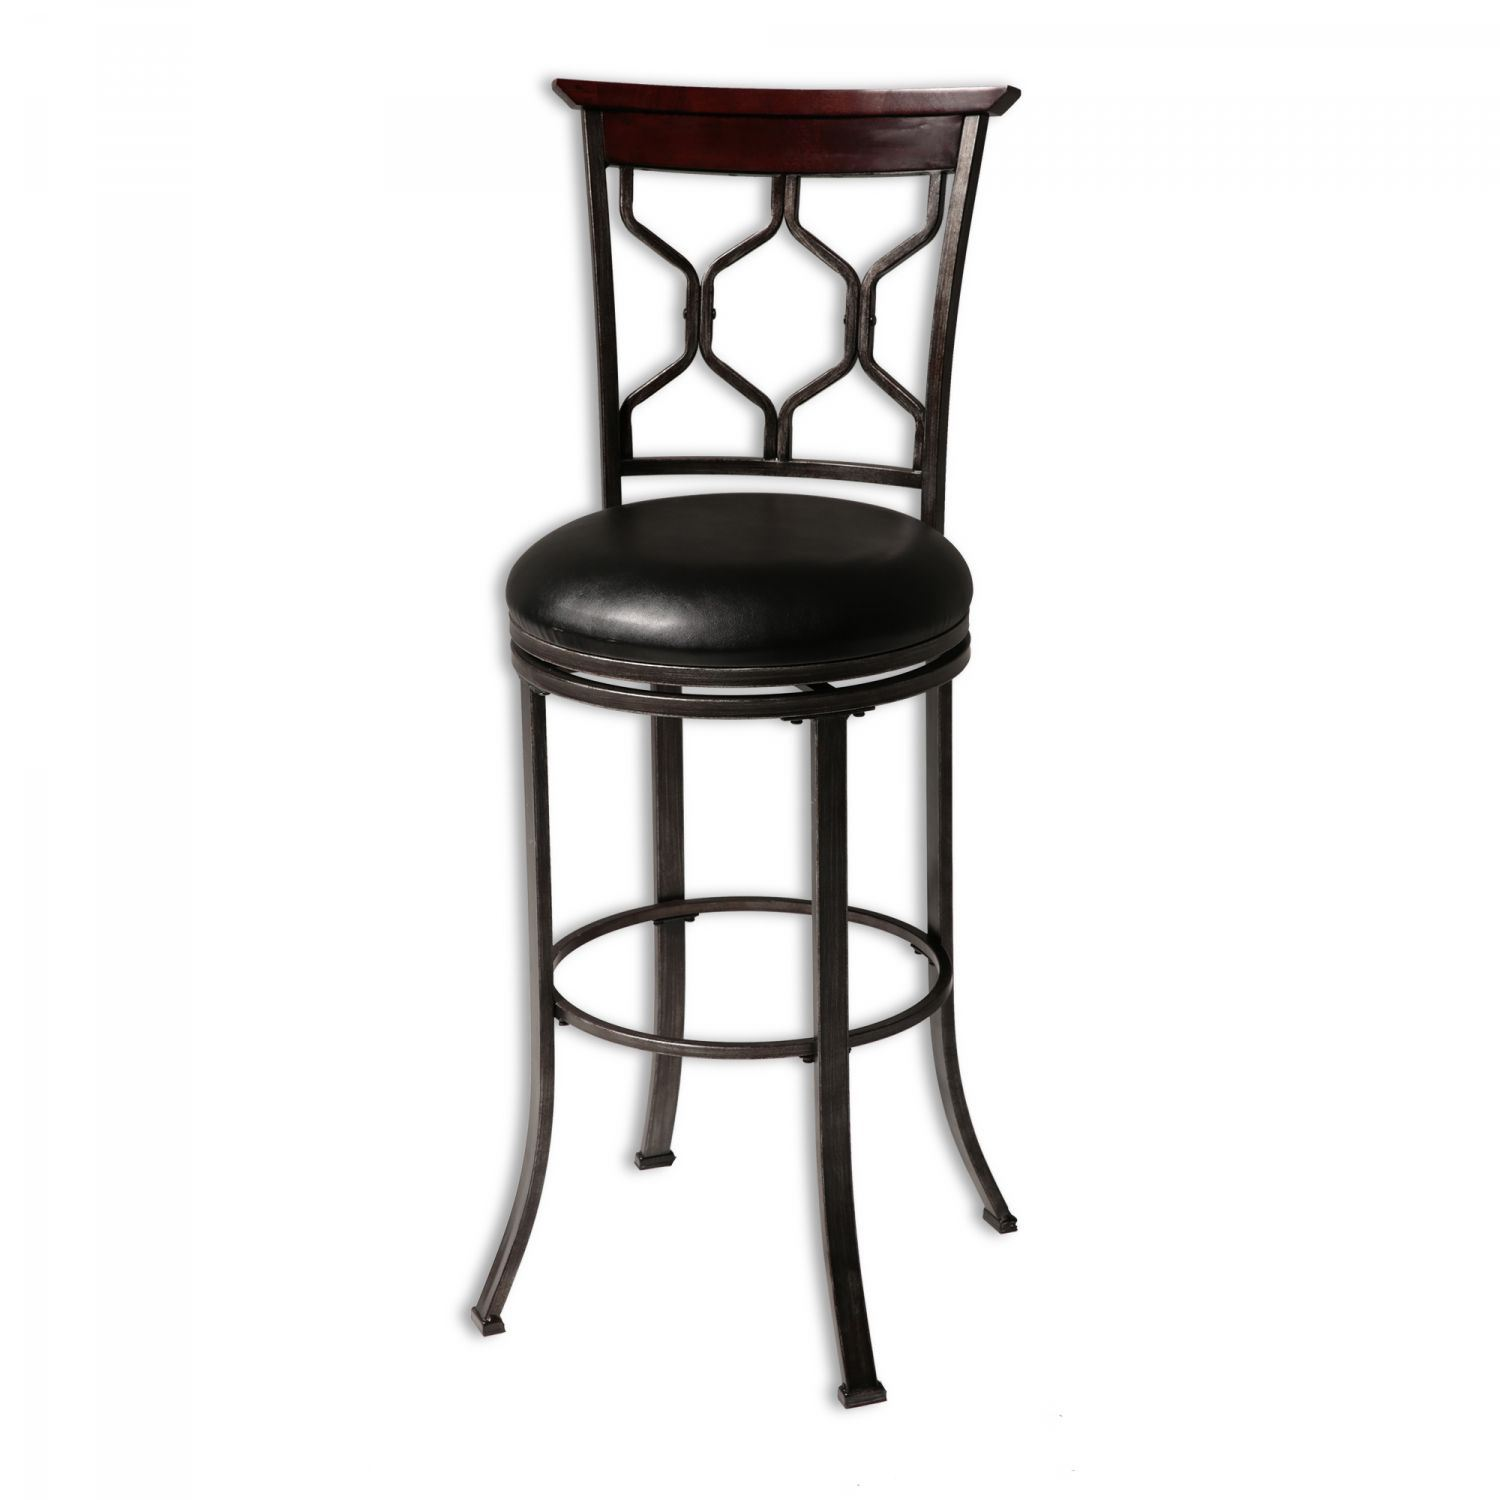 Tallahassee Metal Counter Stool D C1x046 Fashion Bed